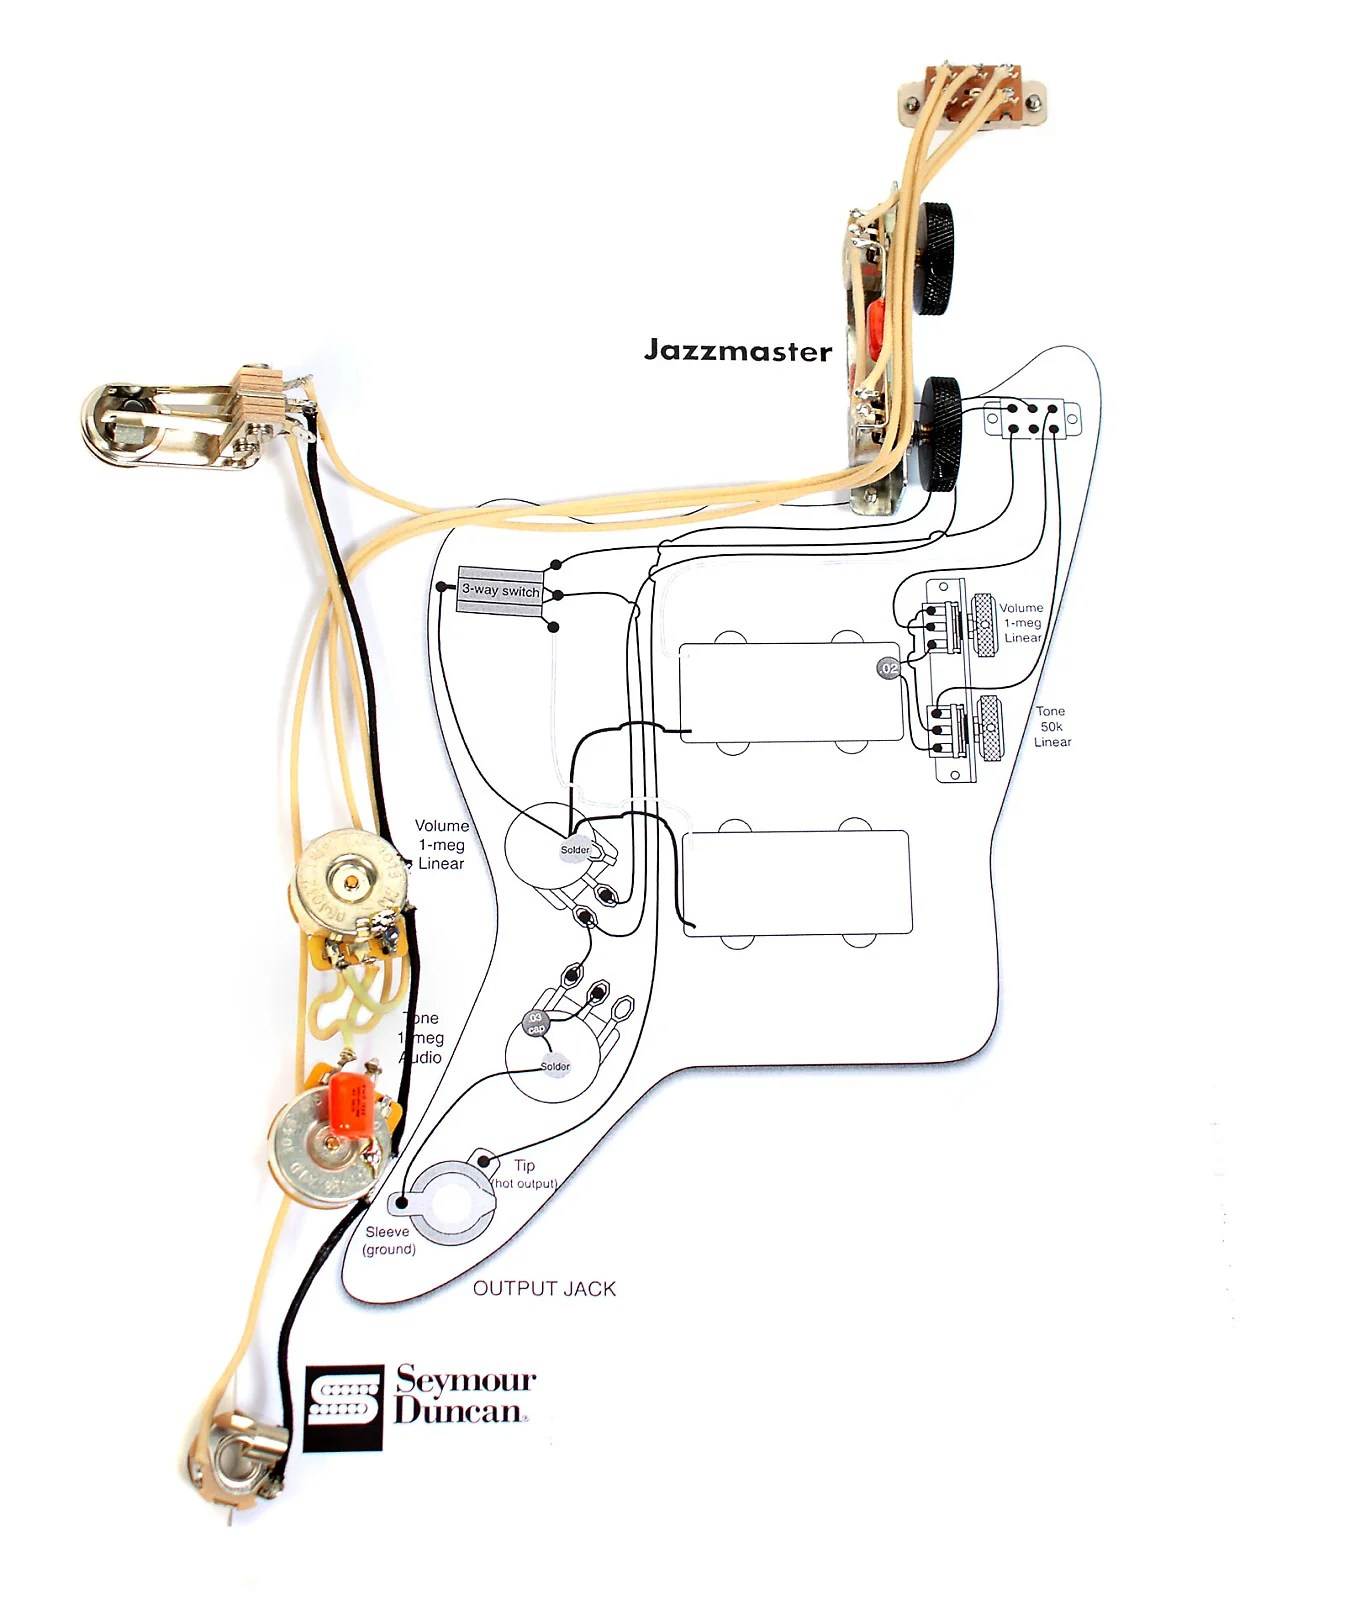 Wiring Diagram Diagram And Parts List For Sharp Microwaveparts Model